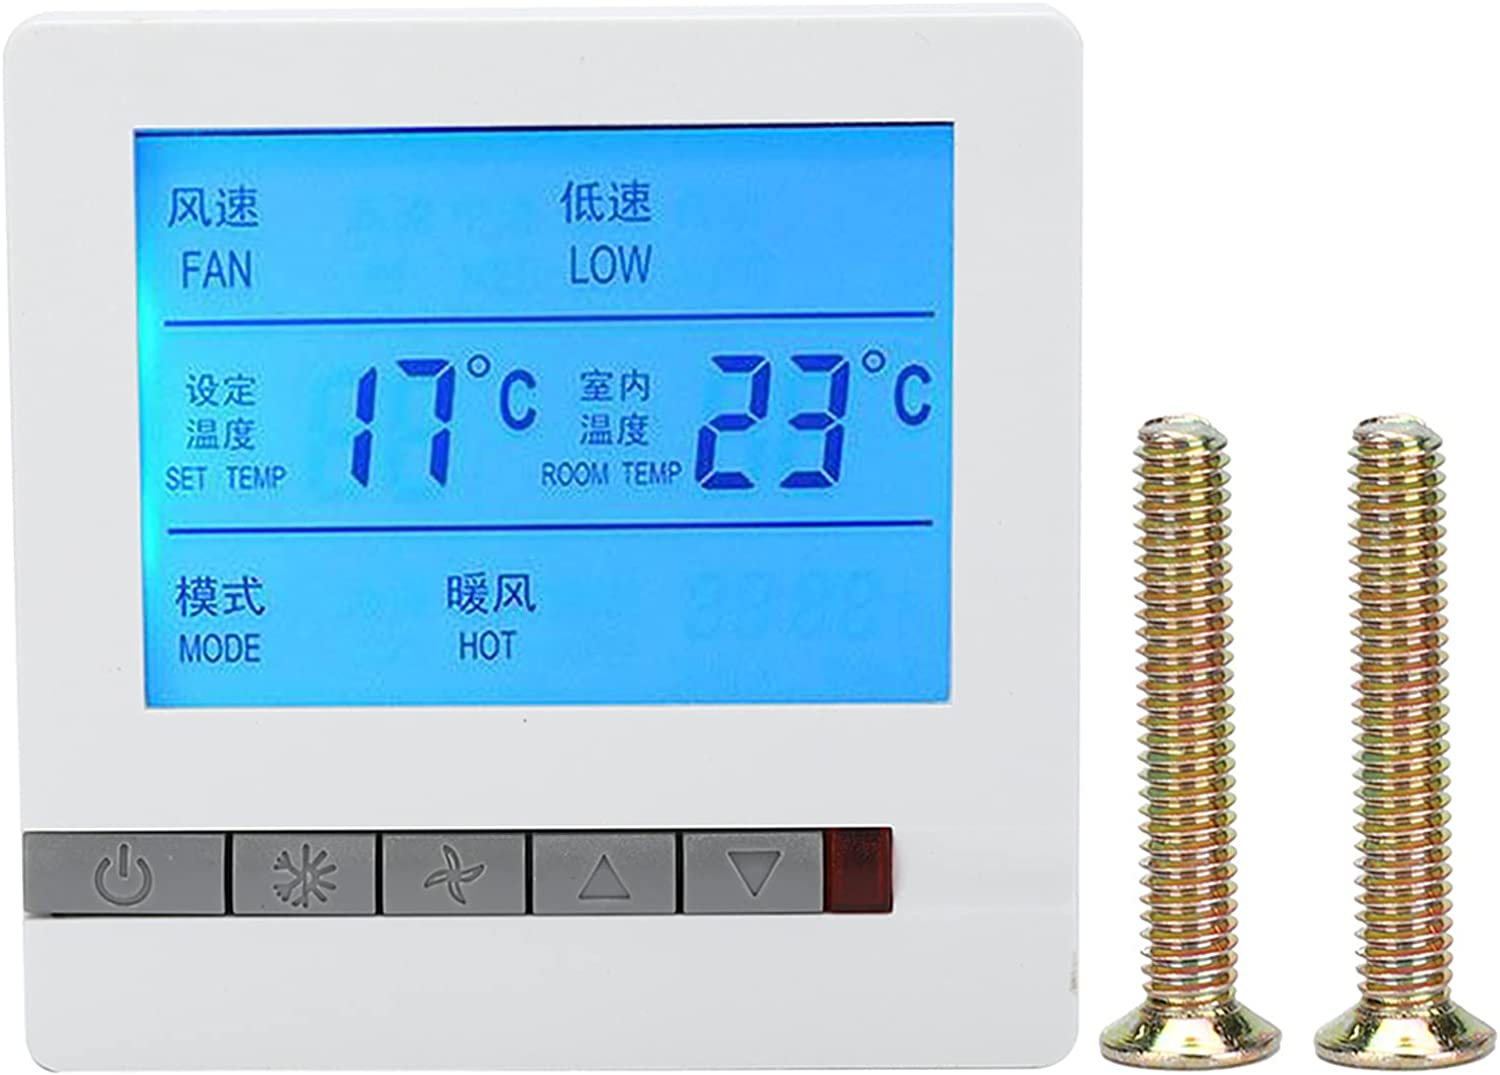 Smart Thermostat, Digital Temperature Controller, Thermostat Pan